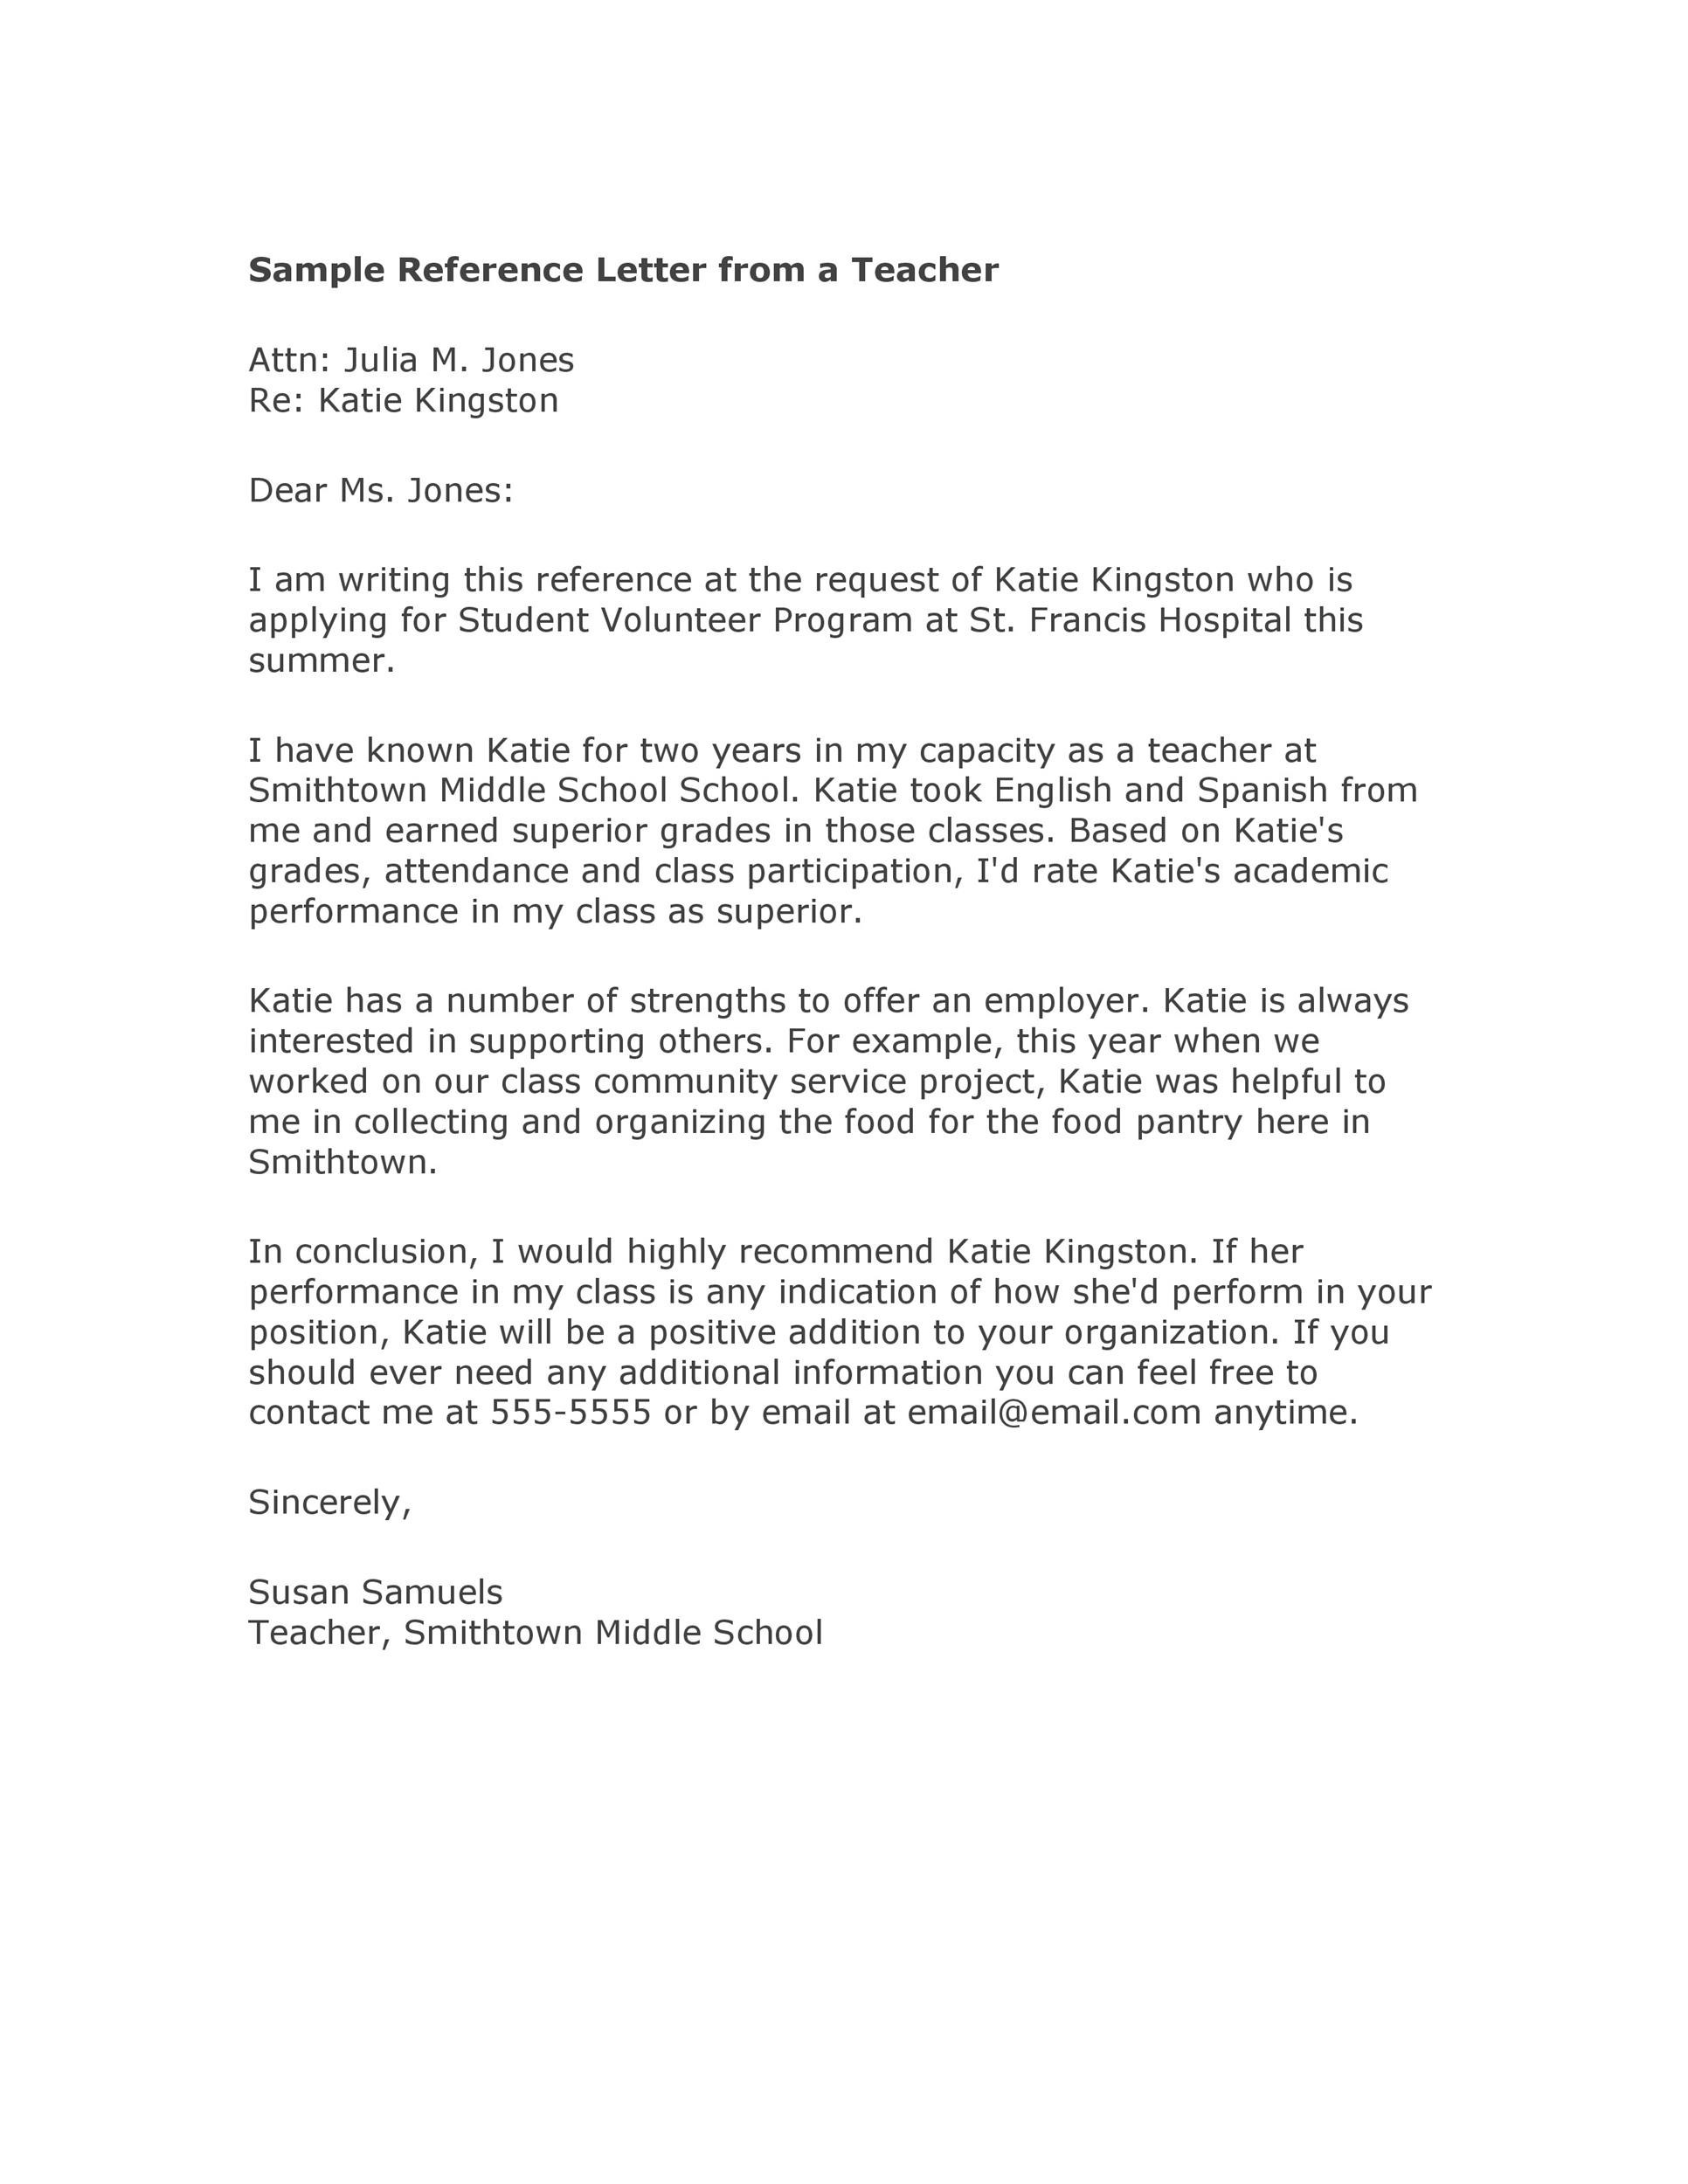 Sample Teacher Letter Of Recommendation from templatelab.com